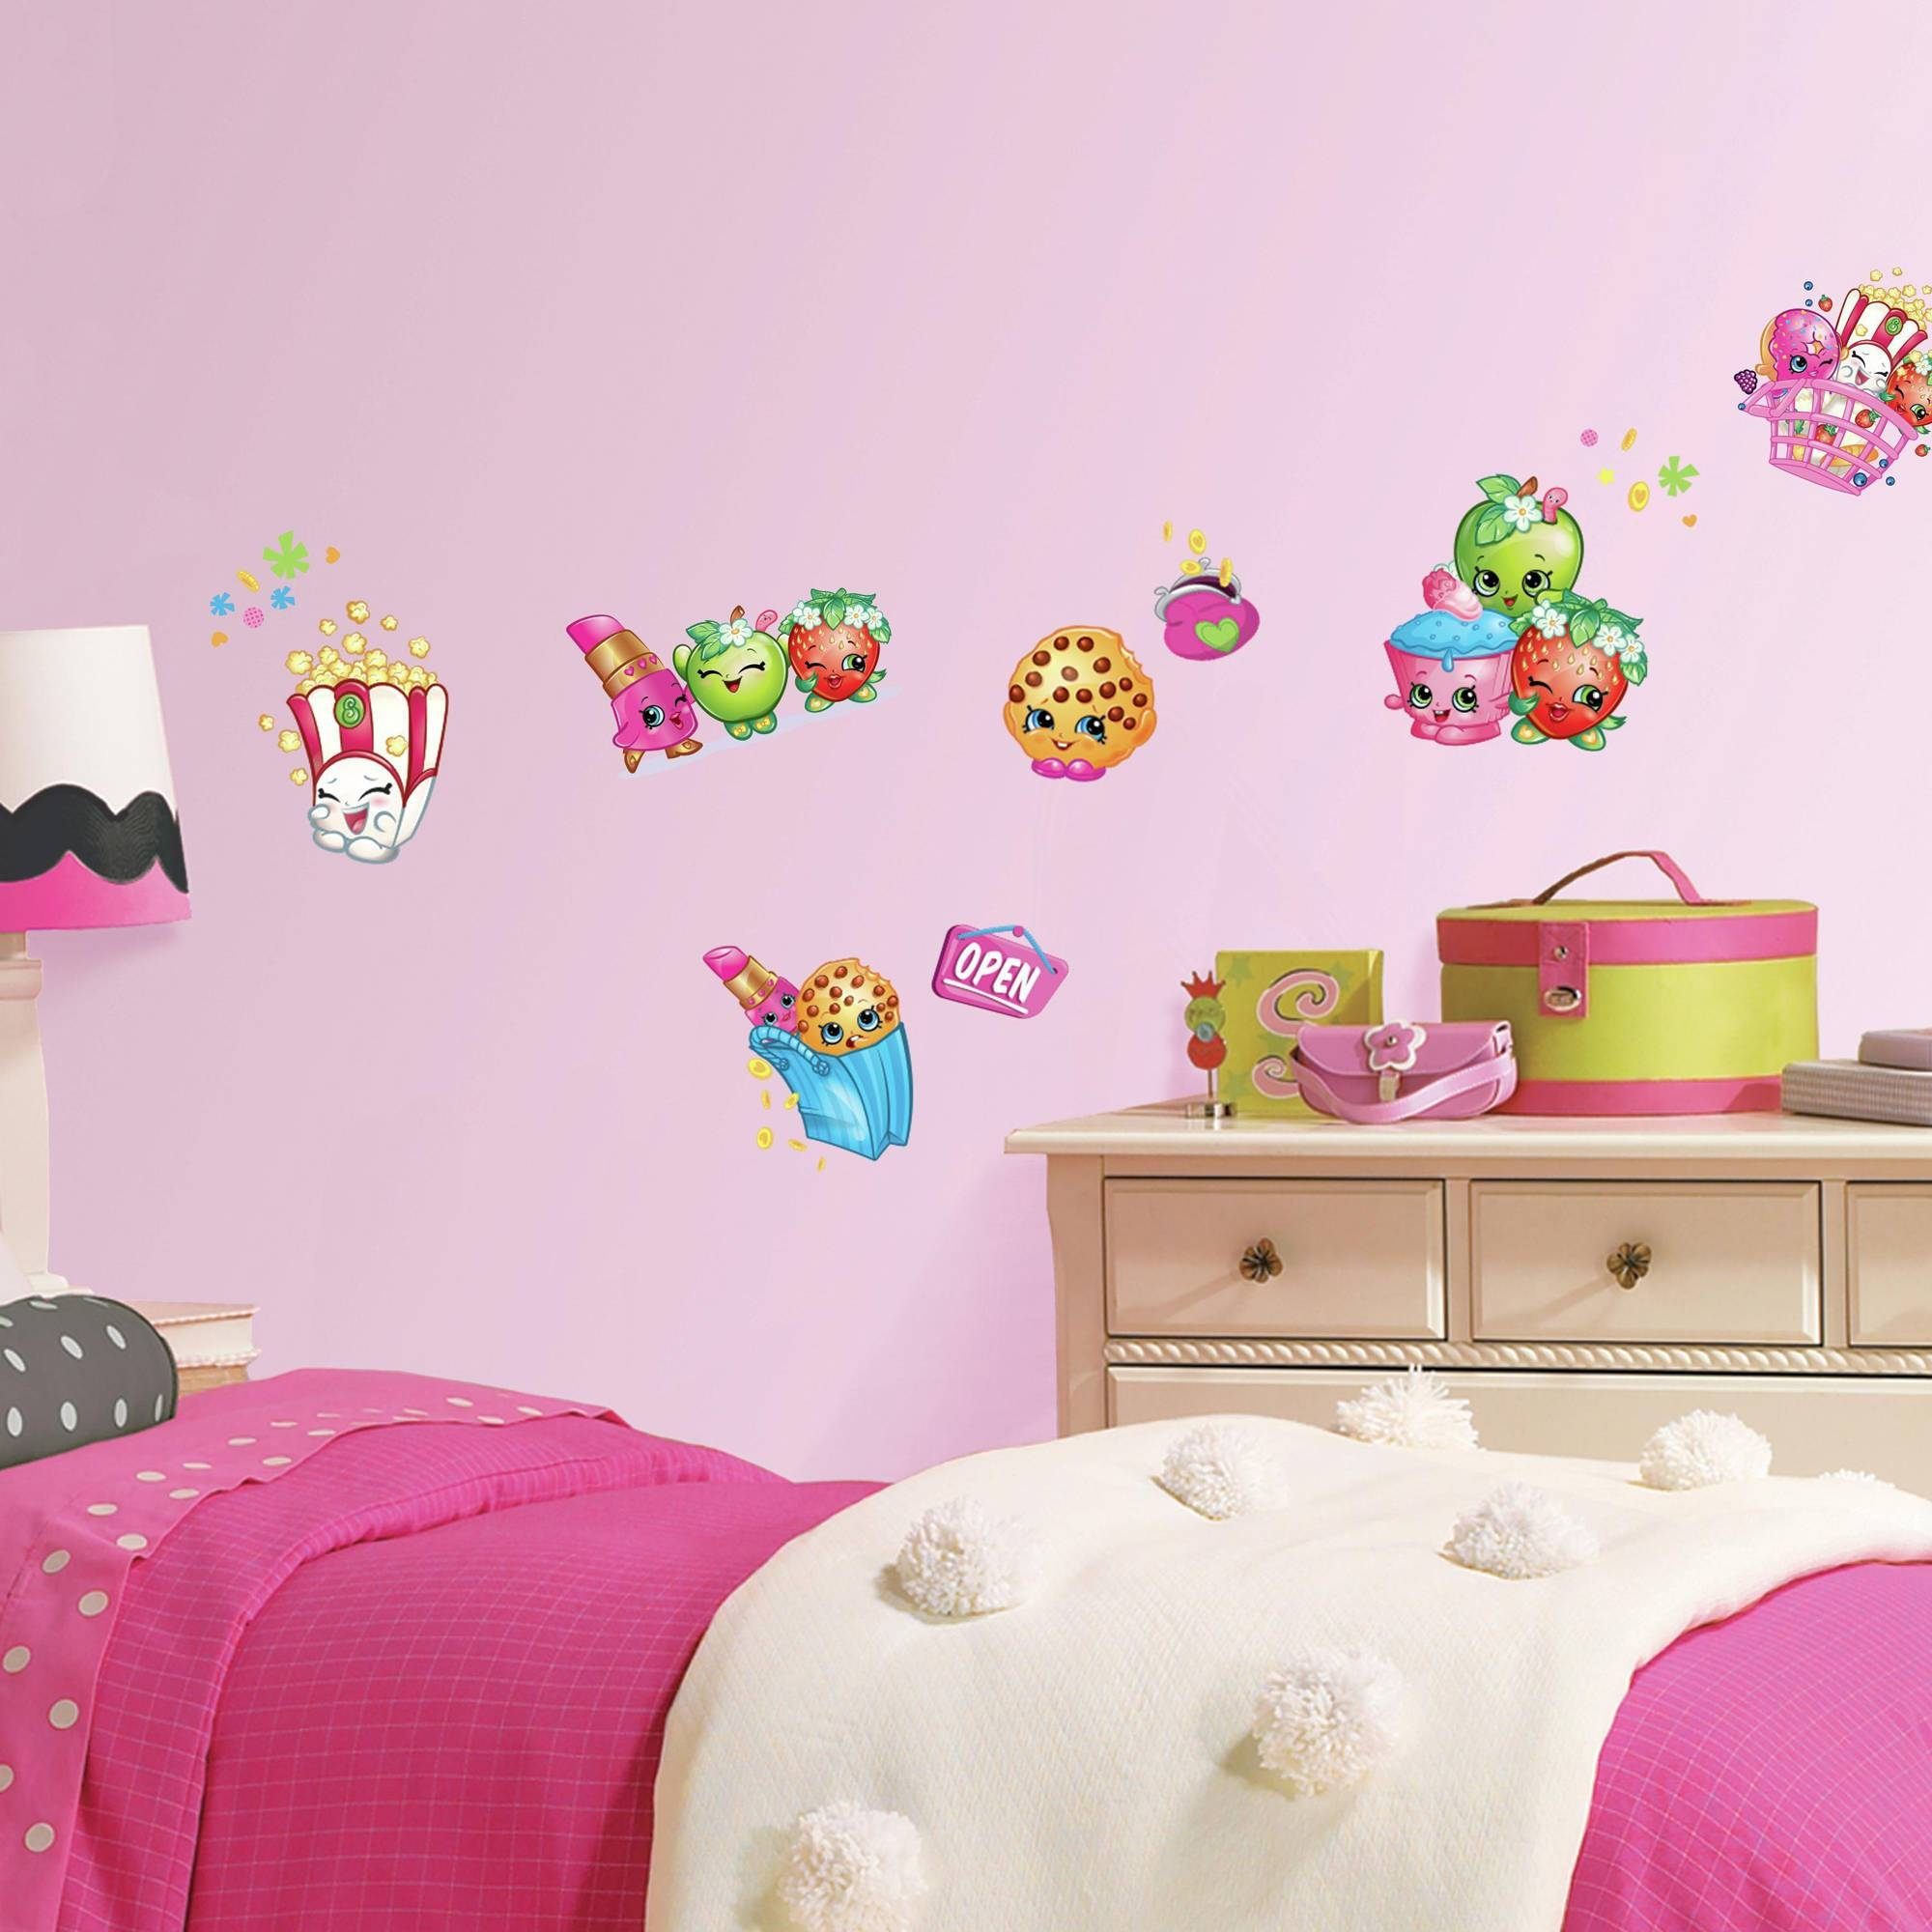 Roommates Shopkins Peel And Stick Wall Decals – Walmart For Most Recent Preschool Classroom Wall Decals (Gallery 29 of 30)